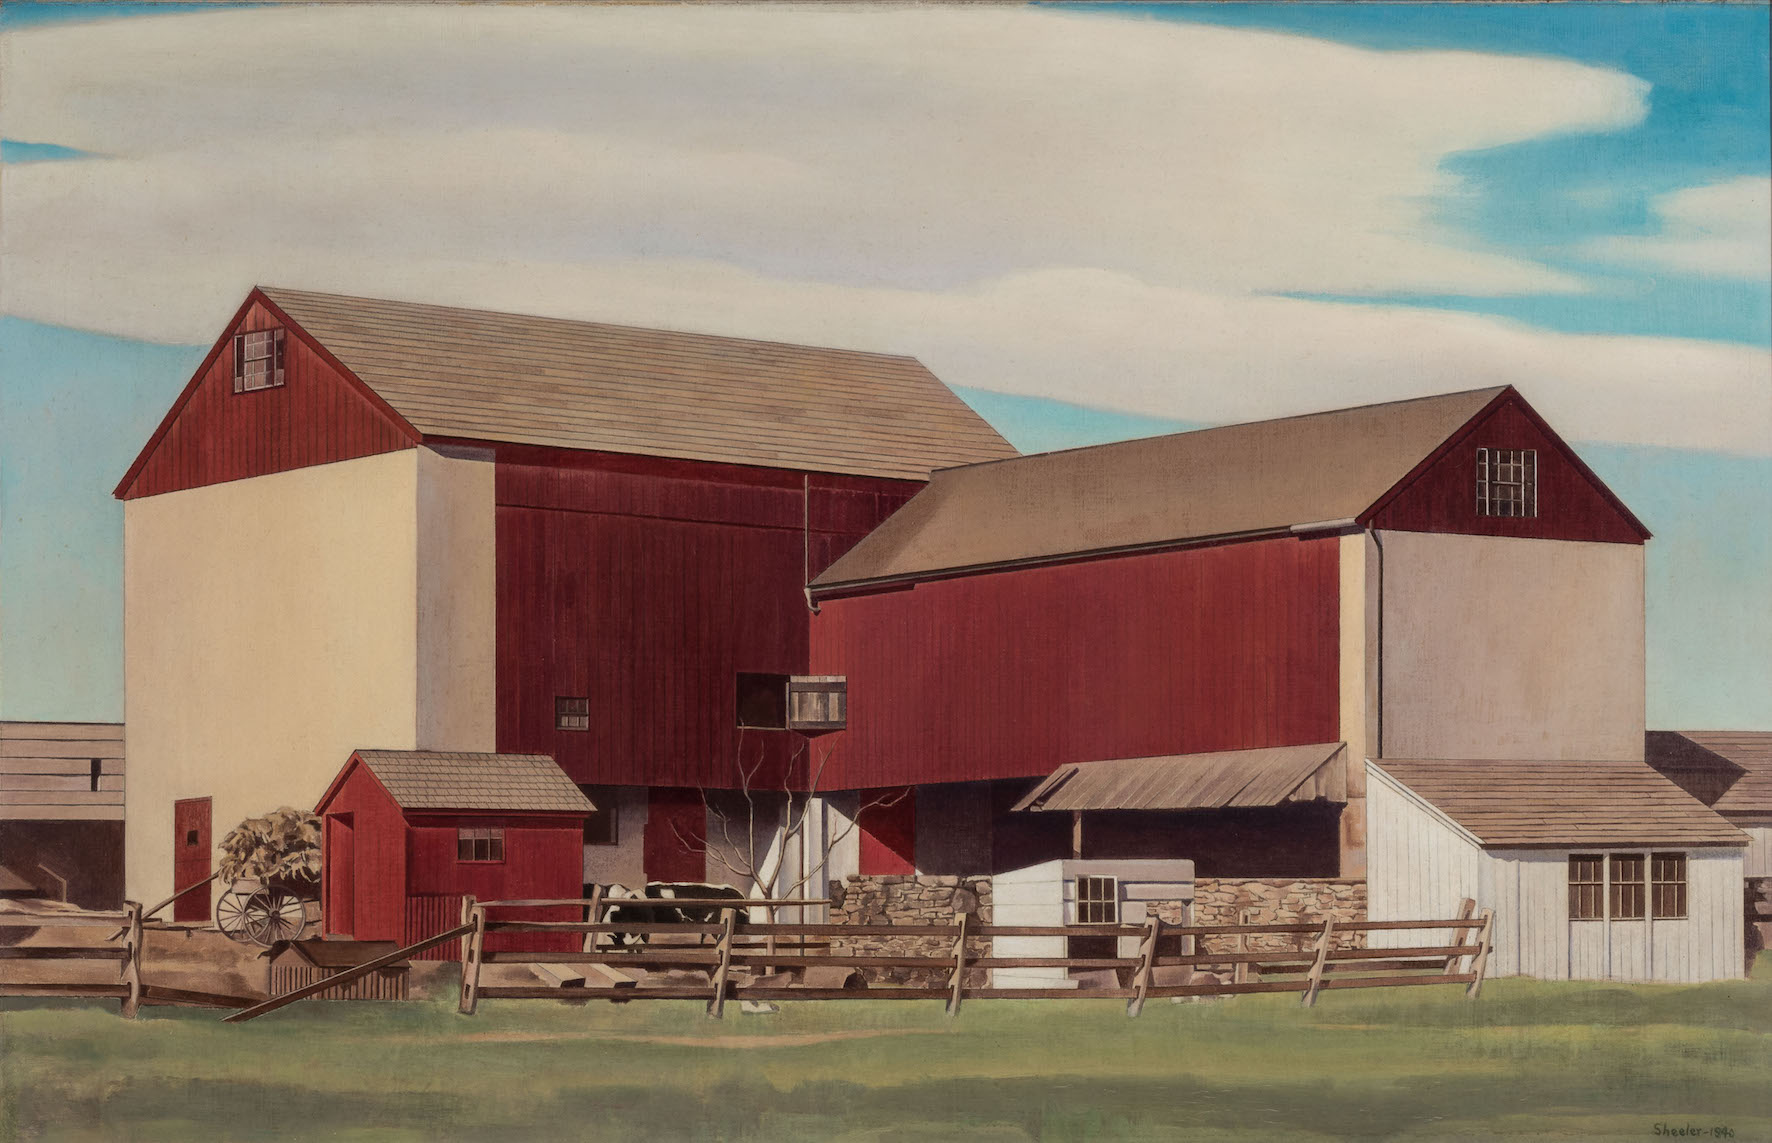 Bucks County Barn (c) Estate of Charles Sheeler.jpg